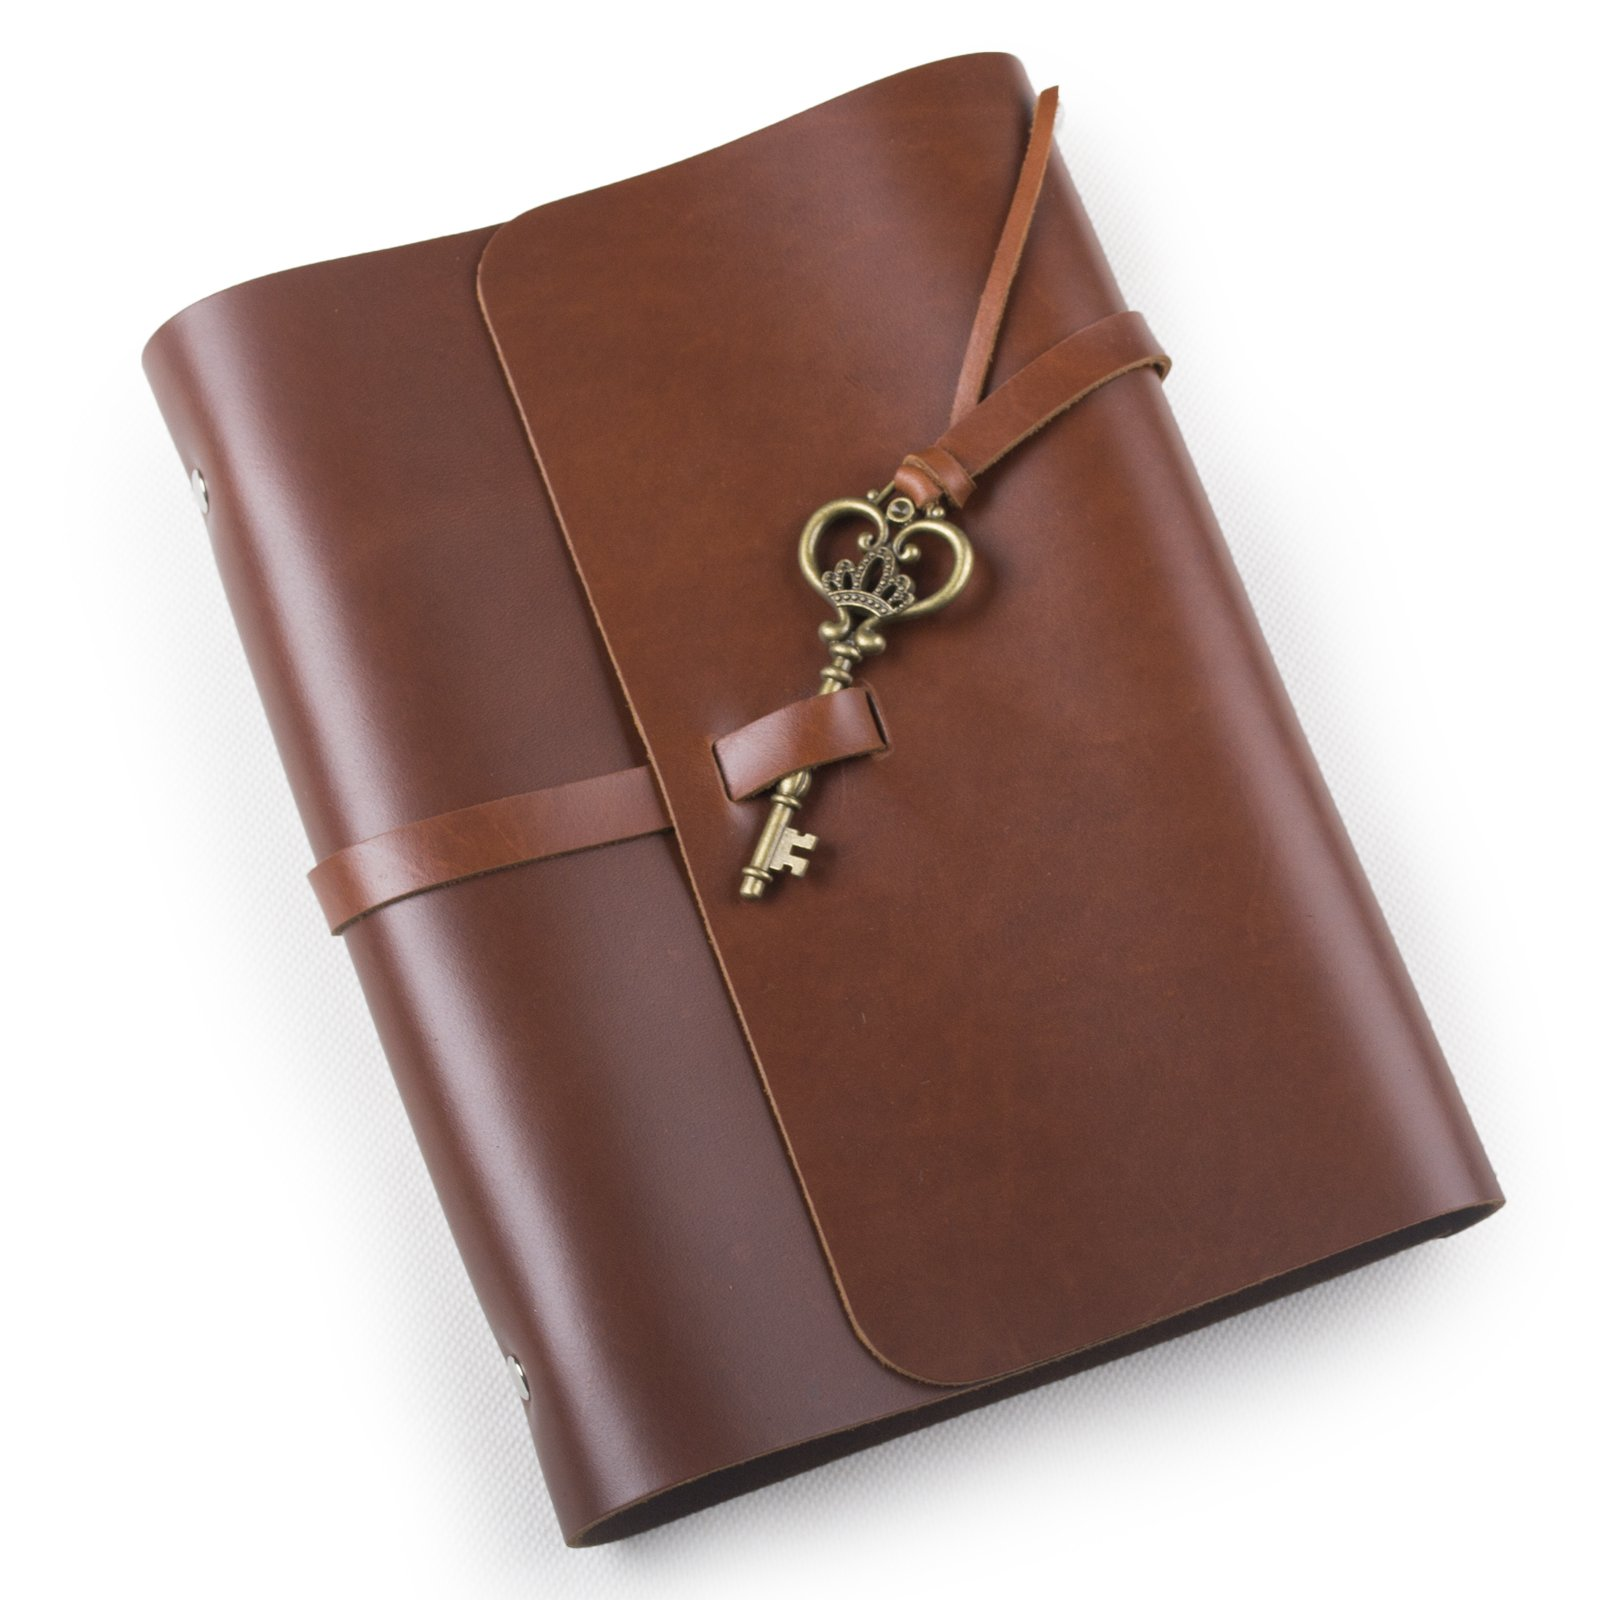 Ancicraft Soft Genuine Leather Journal Diary Notebook with Retro Key Charm 6 Ring Binder A5 Lined Craft Paper (Red Brown & A5 Lined craft paper)